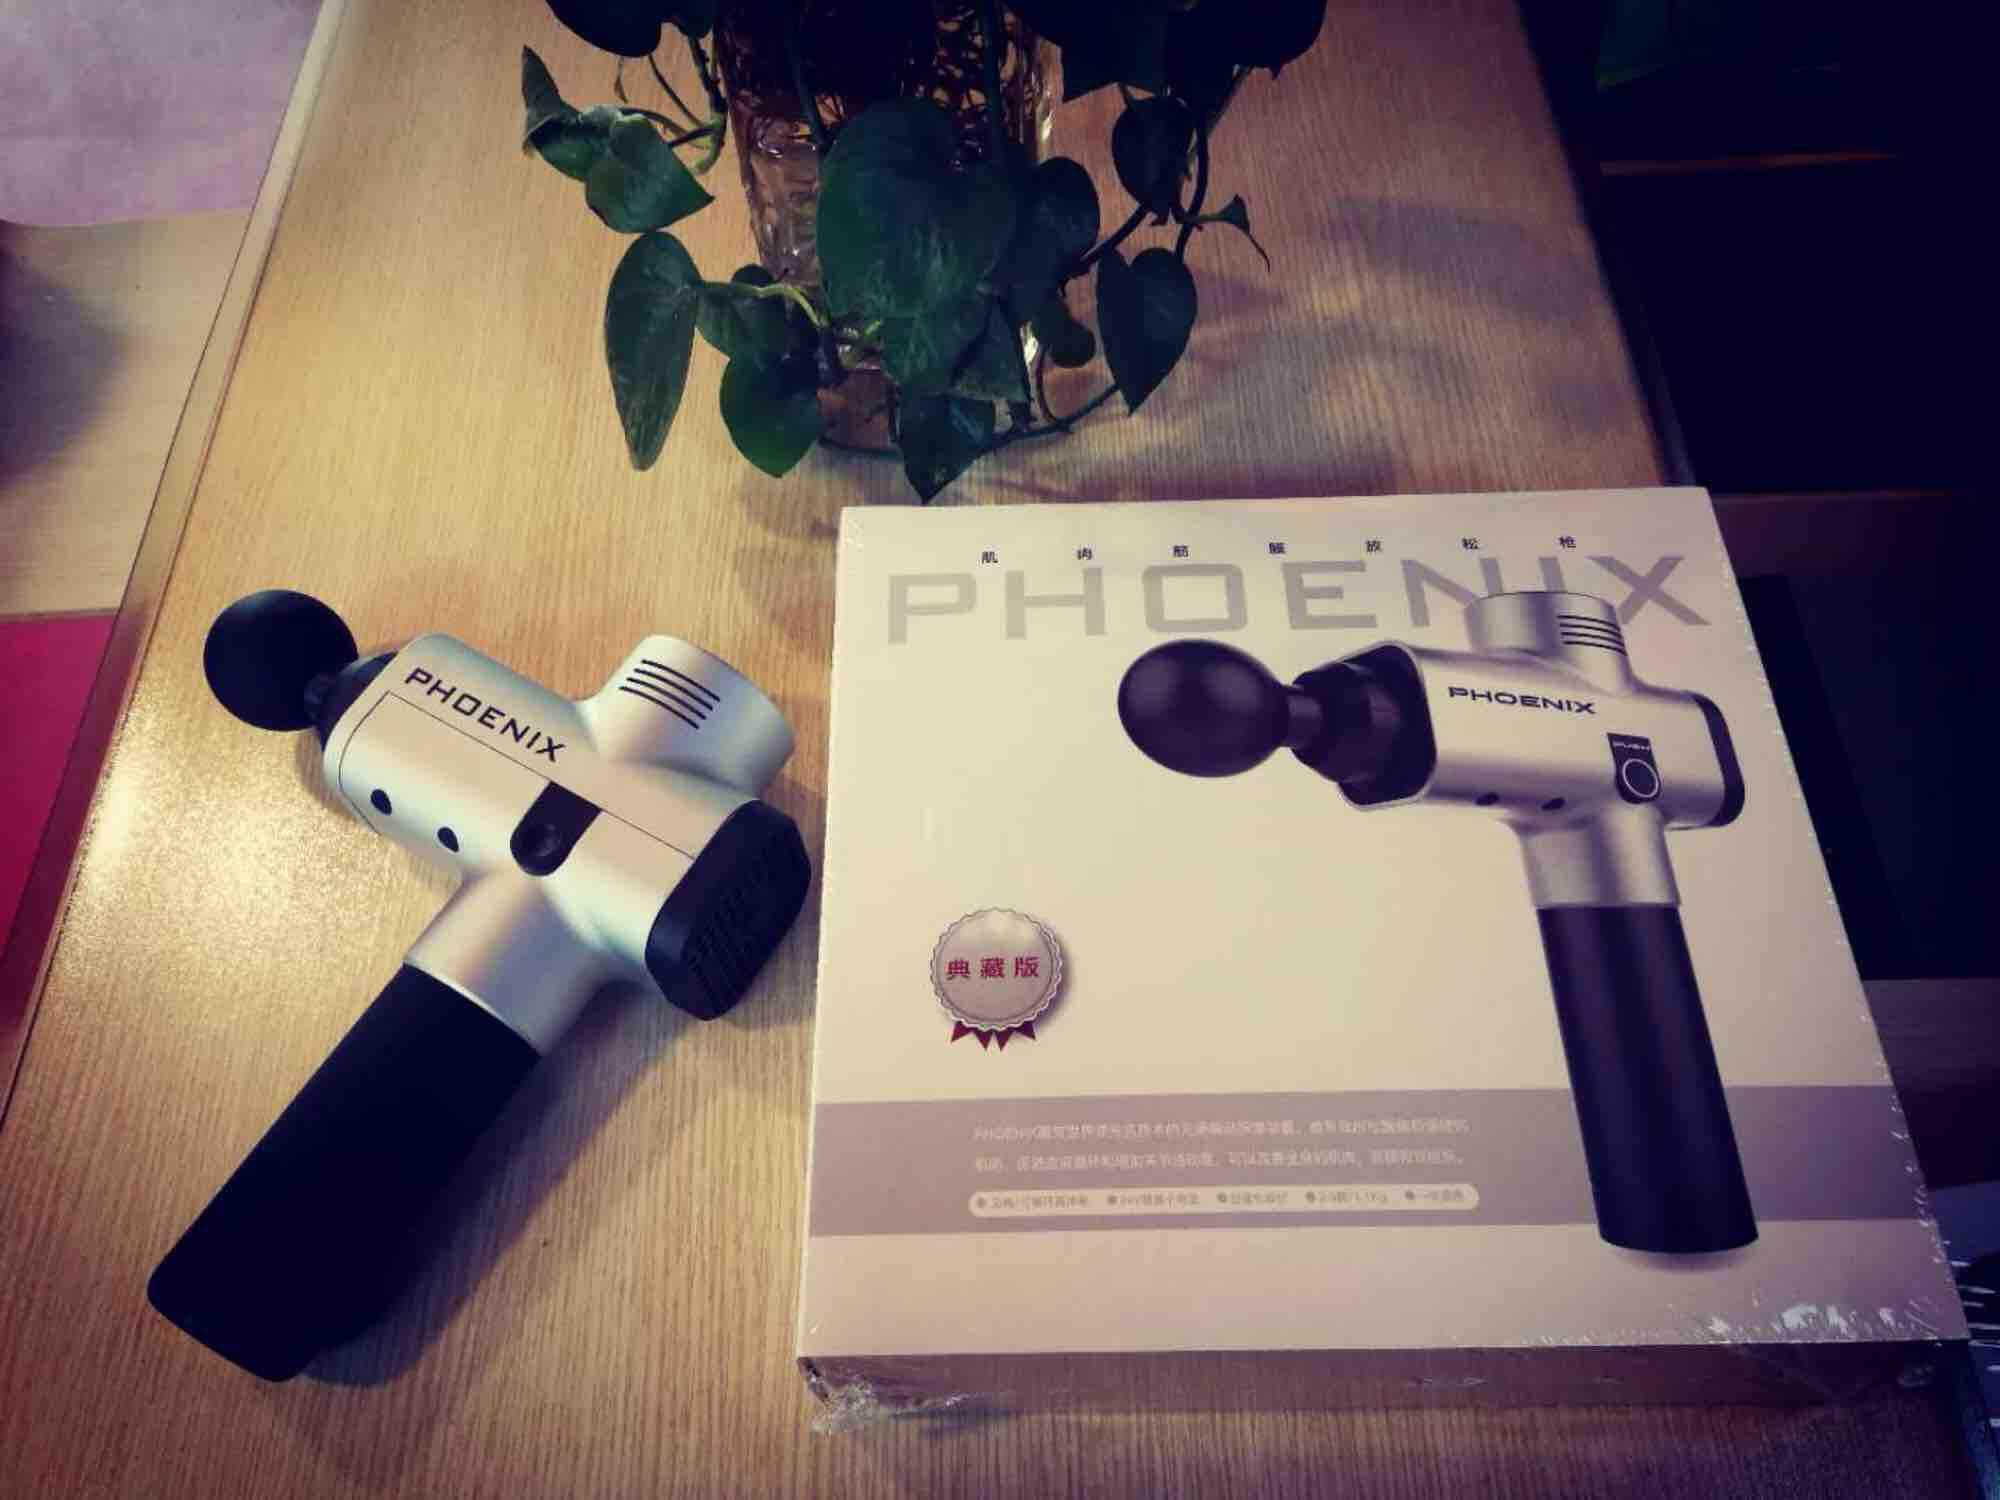 【Original】Phoenix A2 Professional Massage Theragun with 4 Massage Heads  Deep Relax Therapy Body Massage Relief Pains